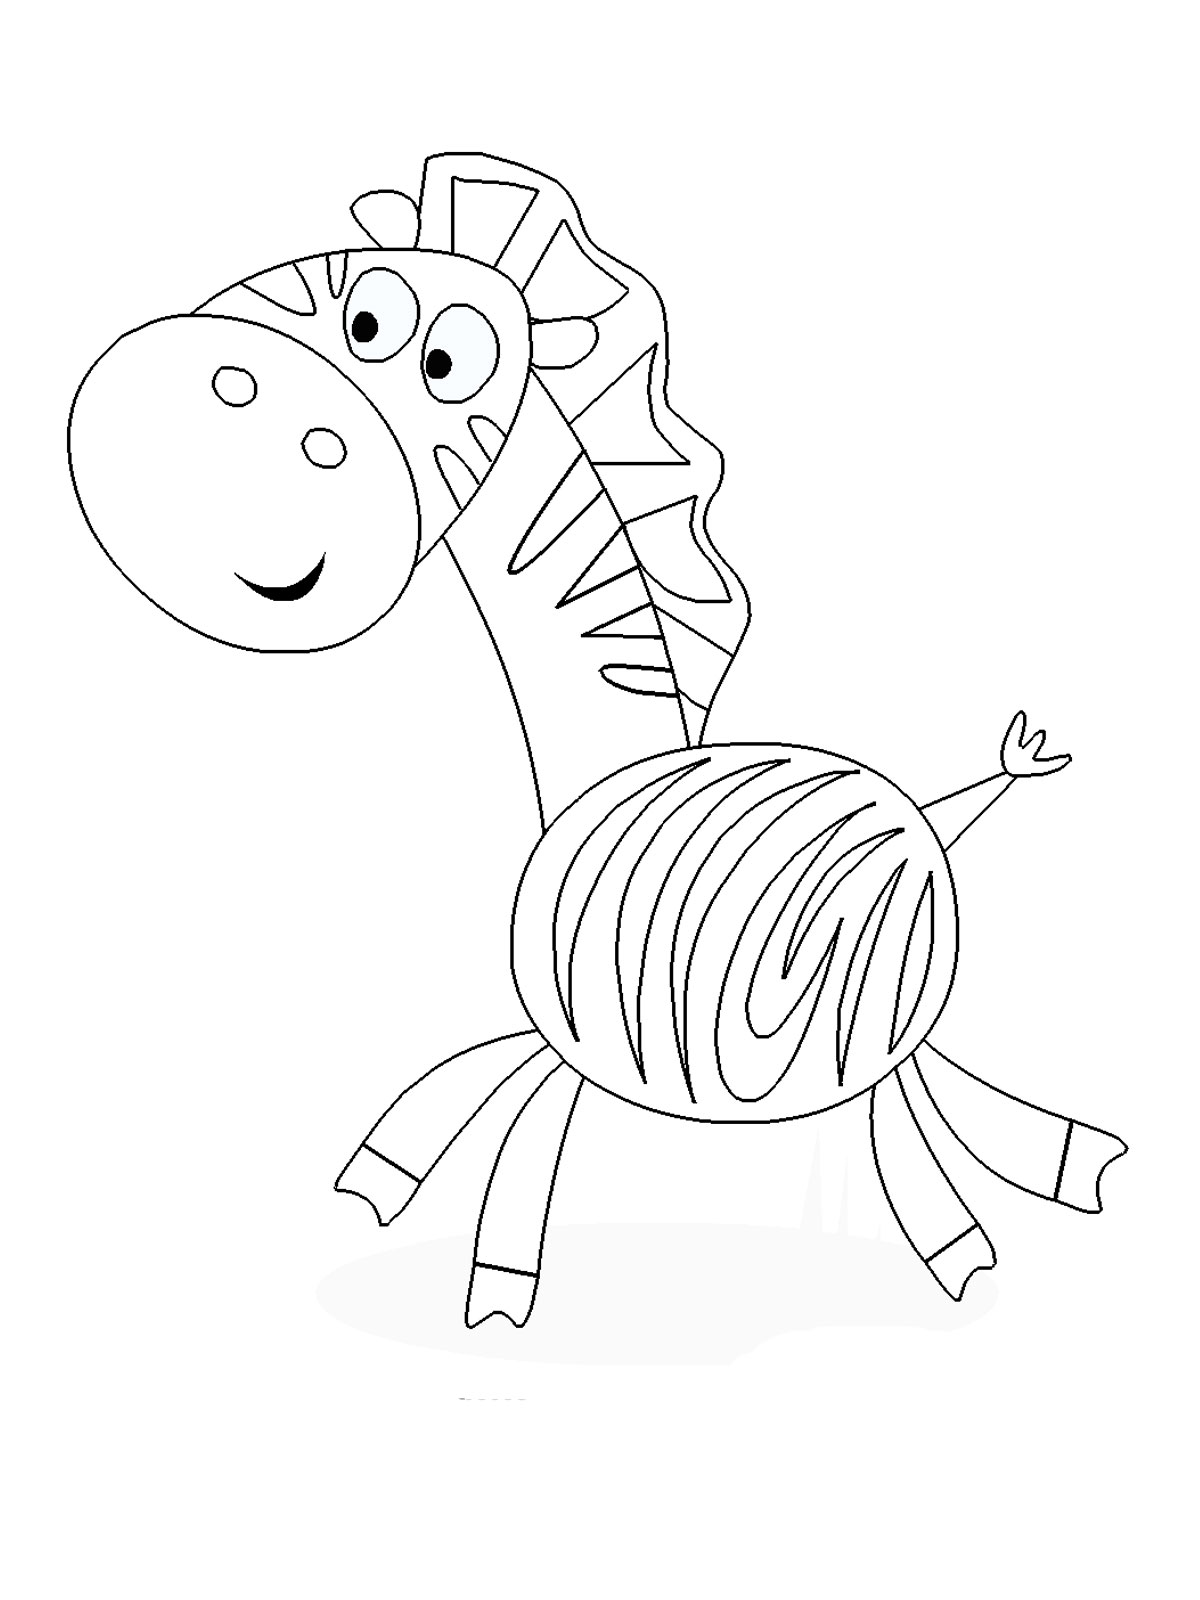 coloring pages for kids printable free printable goofy coloring pages for kids printable coloring for pages kids